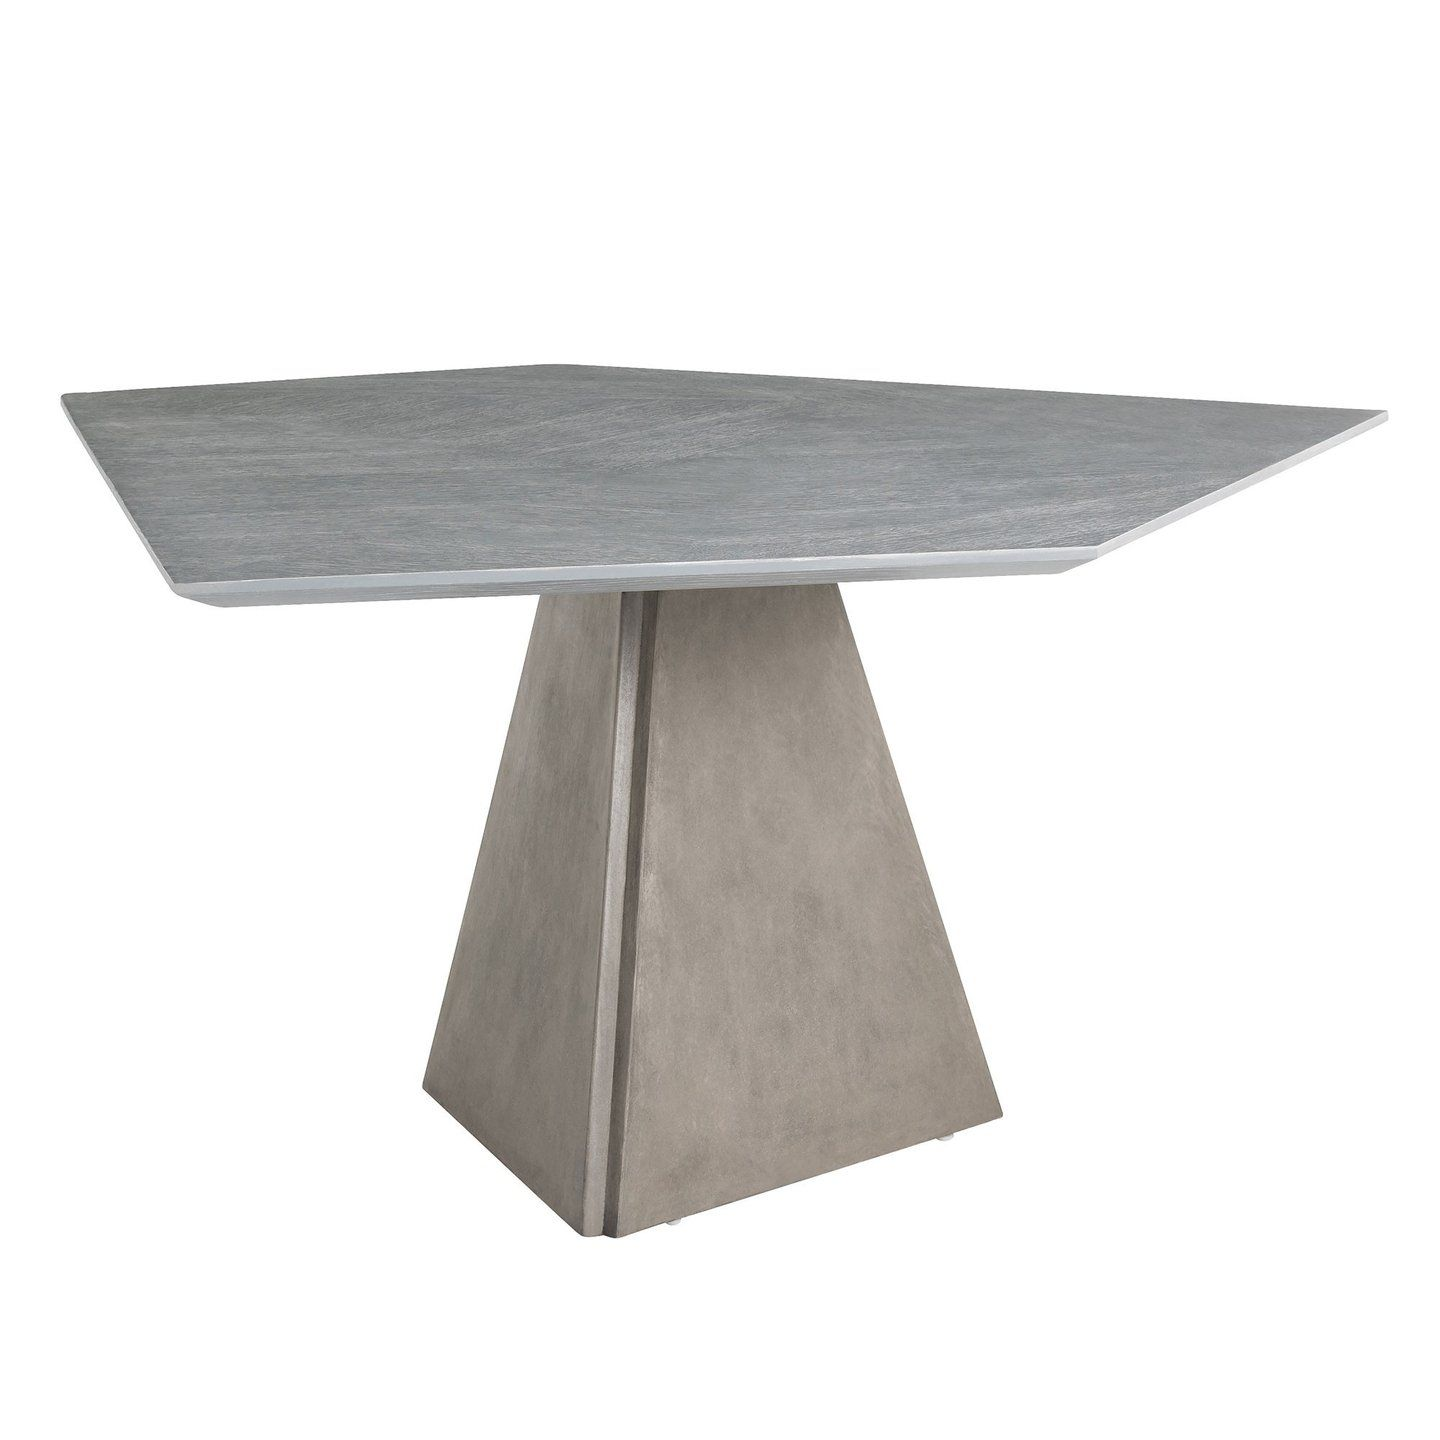 Arteriors Home Simon Dining Table Dining Table Round Foyer